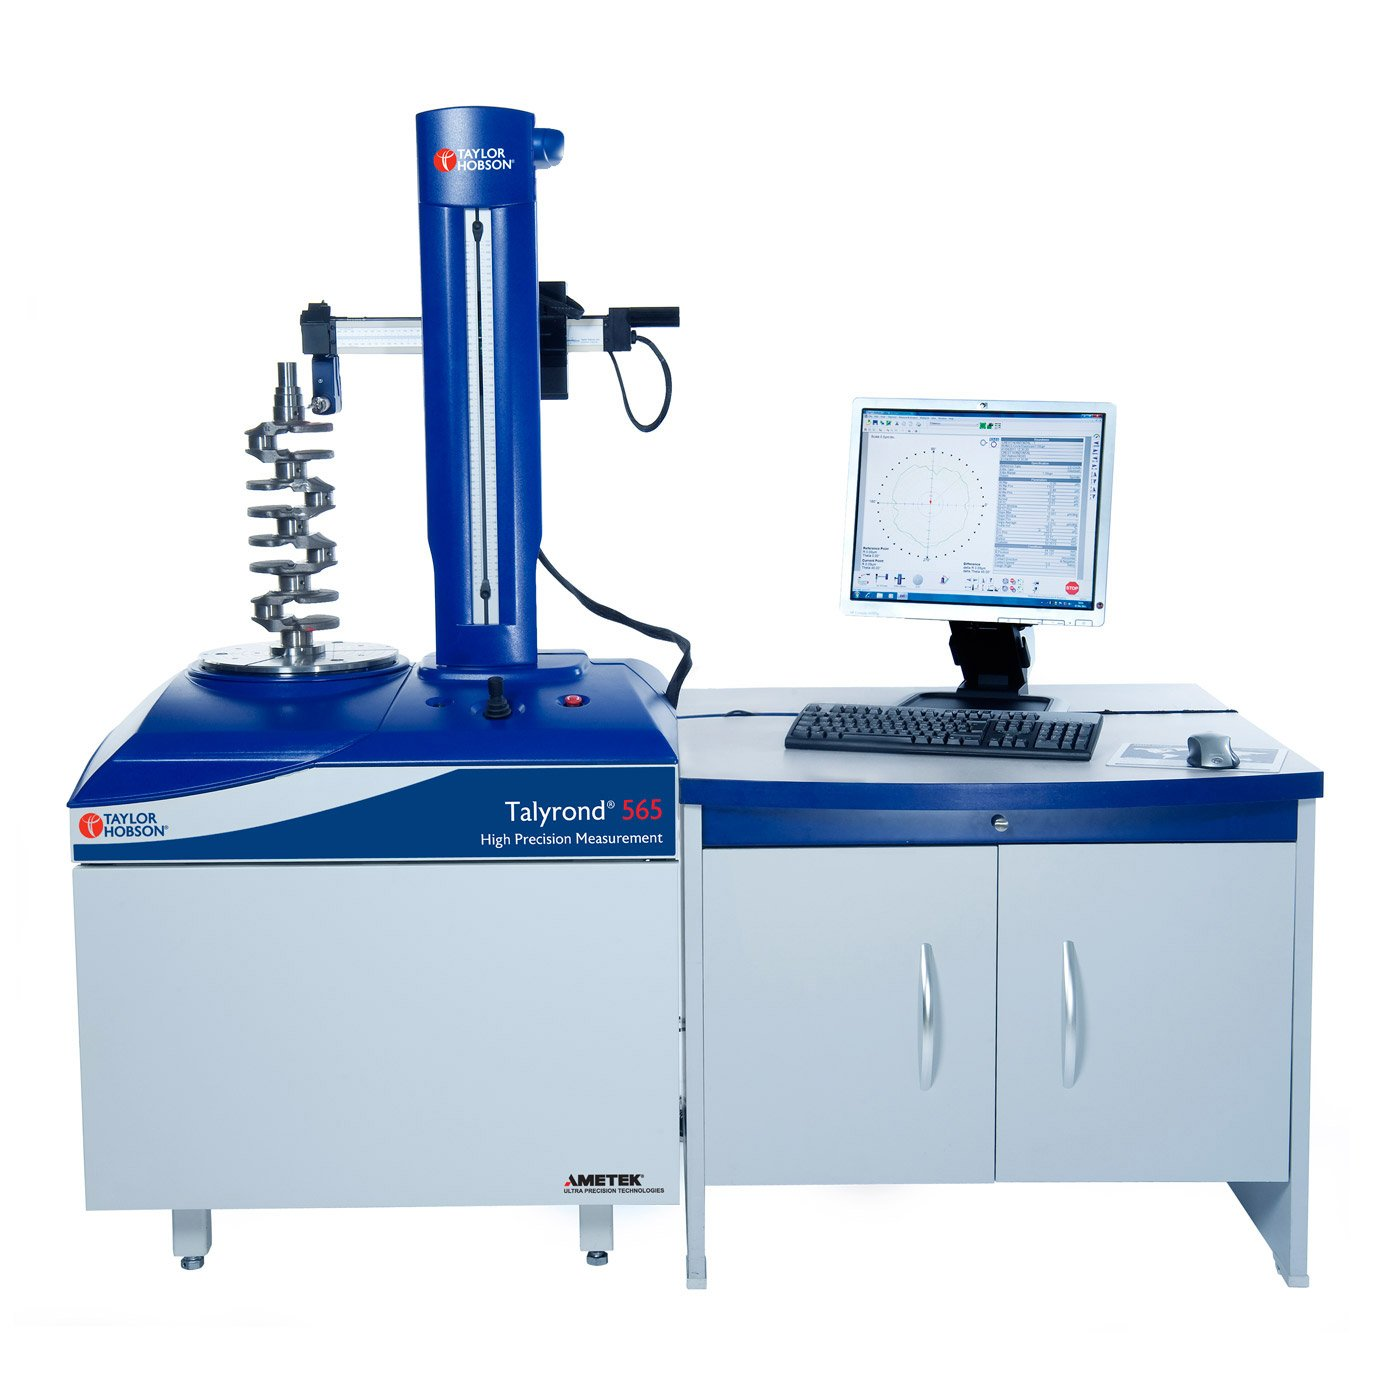 Talyrond 565H - instrument for roundness, cylindricity and straightness measurement